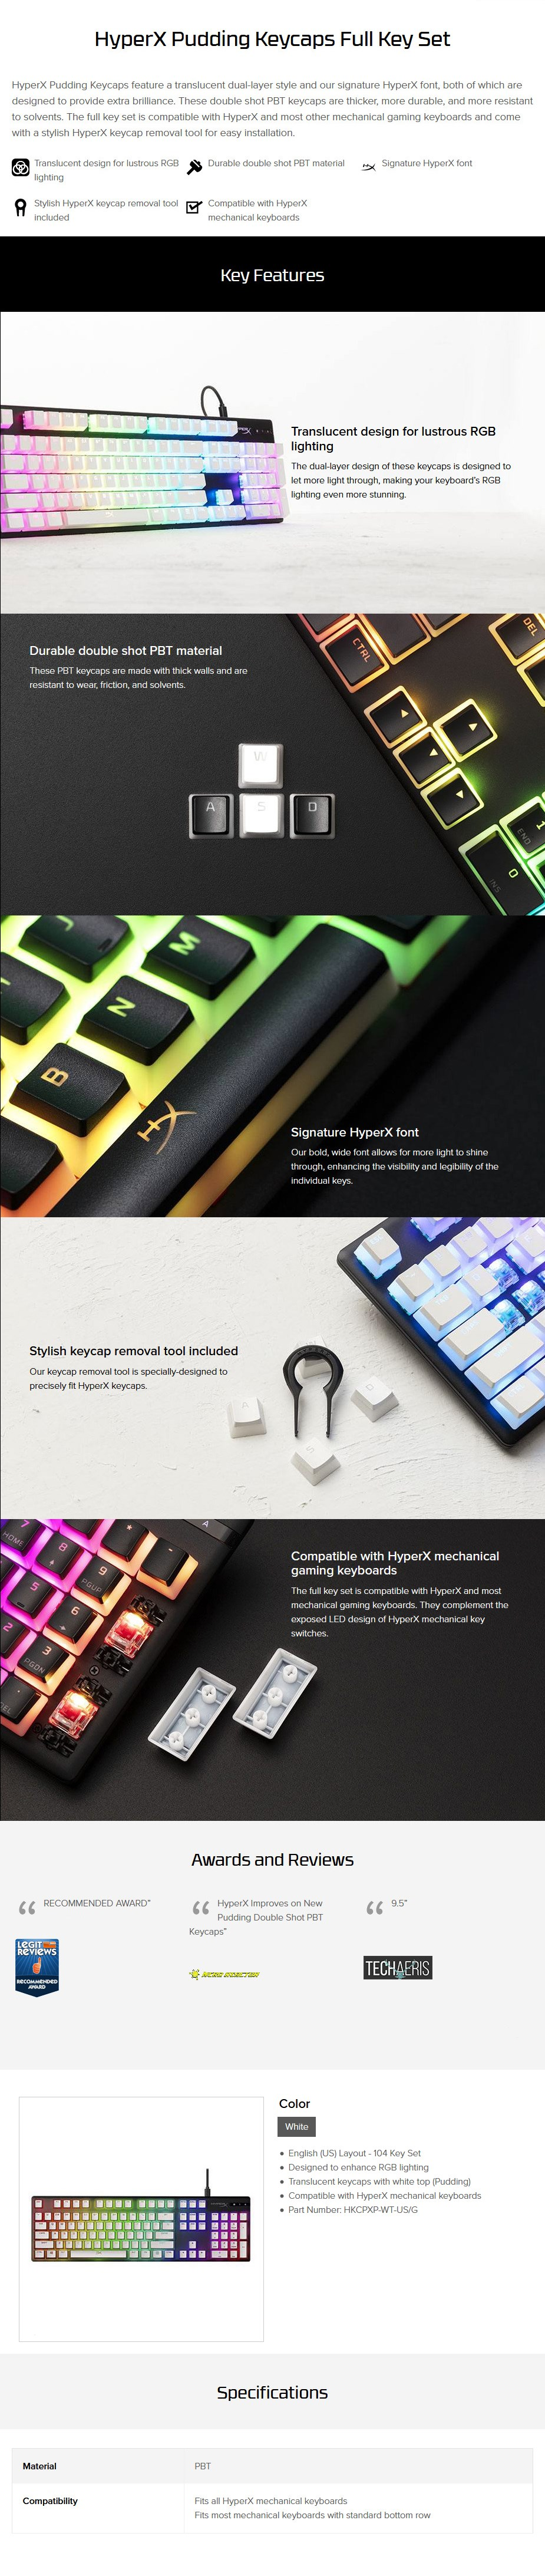 HyperX Double Shot PBT 104-Key Translucent Pudding Keycap Set - White - Overview 1